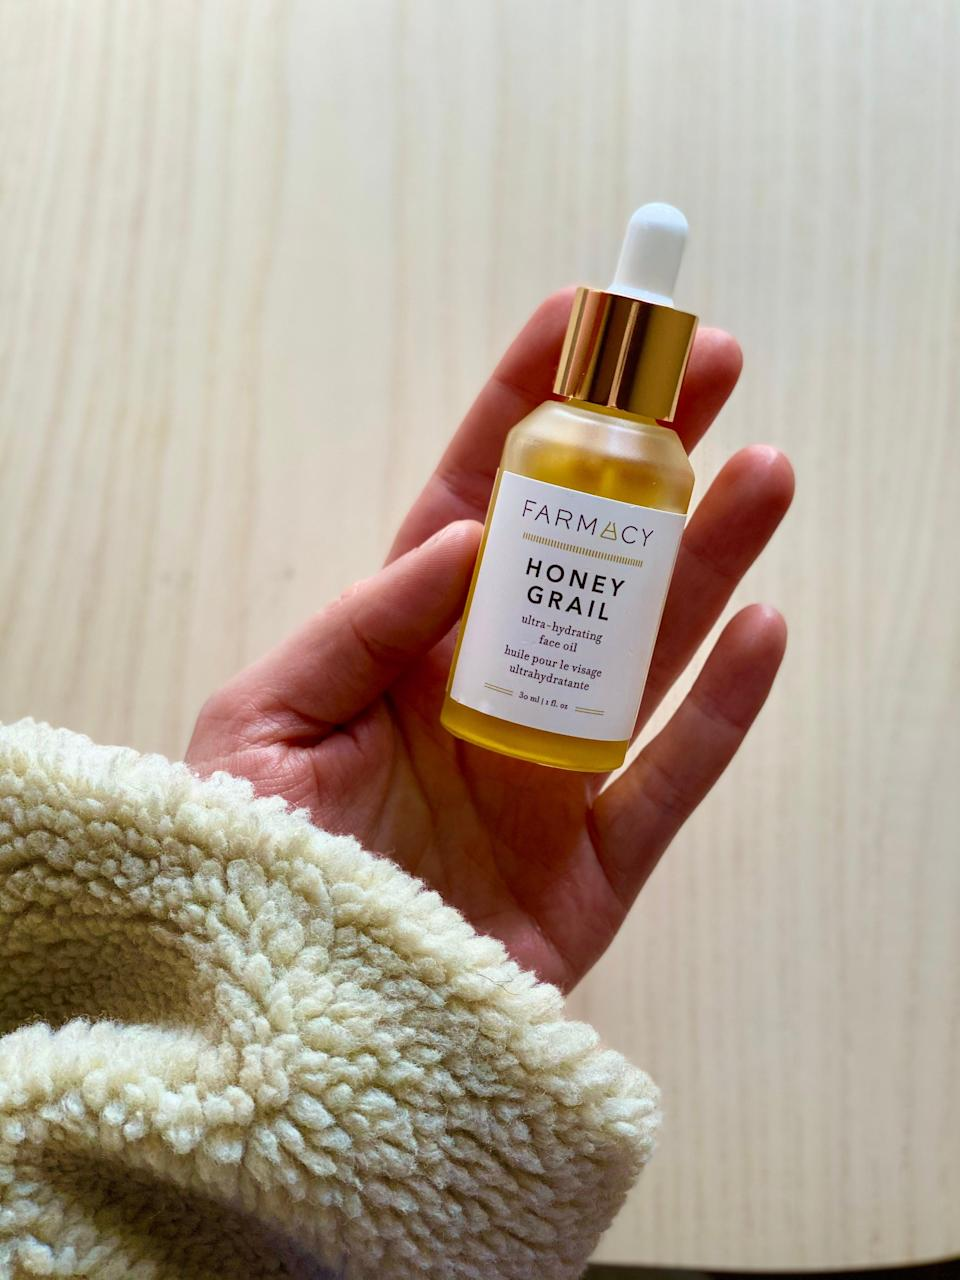 "<h2>Farmacy Honey Grail Ultra-Hydrating Face Oil</h2><br><strong>Last Month's Top MVP:</strong><br>""I have sensitive skin (eczema-prone, easily flushed, struggled with perioral dermatitis for five years) — so when I find a product that actually harmonizes with my complexion instead of traumatizing it, it's a good day. I'd had Farmacy's all-natural skincare on my radar but had yet to actually try any of its premium products until Honey Grail. And, it's just as divine as its clever name suggests. It's pretty spot-on described as a ""fast-absorbing, antioxidant-rich face oil for ultimate hydration and glow!"" The little bottle features a serum-like dropper that dispenses a luxe oil that feels and smells like a lightweight version of honey — likely due to the fact that it's made with real honey, along with sea buckthorn and a five-flower oil blend (including omegas, vitamins, and amino acids). Since I've been using it in the mornings after splashing my face with cool water, I've noticed improvements; my complexion feels plumper, smoother, brighter, and, most importantly, soothed! A little goes a long way and I've got plans to lean on this product as a sensitive-winter-skin holy grail (or, should I say honey grail?)."" <em>– Elizabeth Buxton, Editor</em><br><br><em>Shop <strong><a href=""https://www.farmacybeauty.com/products/honey-grail"" rel=""nofollow noopener"" target=""_blank"" data-ylk=""slk:Farmacy"" class=""link rapid-noclick-resp"">Farmacy</a></strong></em><br><br><strong>Farmacy</strong> Honey Grail, $, available at <a href=""https://go.skimresources.com/?id=30283X879131&url=https%3A%2F%2Fwww.farmacybeauty.com%2Fproducts%2Fhoney-grail"" rel=""nofollow noopener"" target=""_blank"" data-ylk=""slk:Farmacy"" class=""link rapid-noclick-resp"">Farmacy</a>"